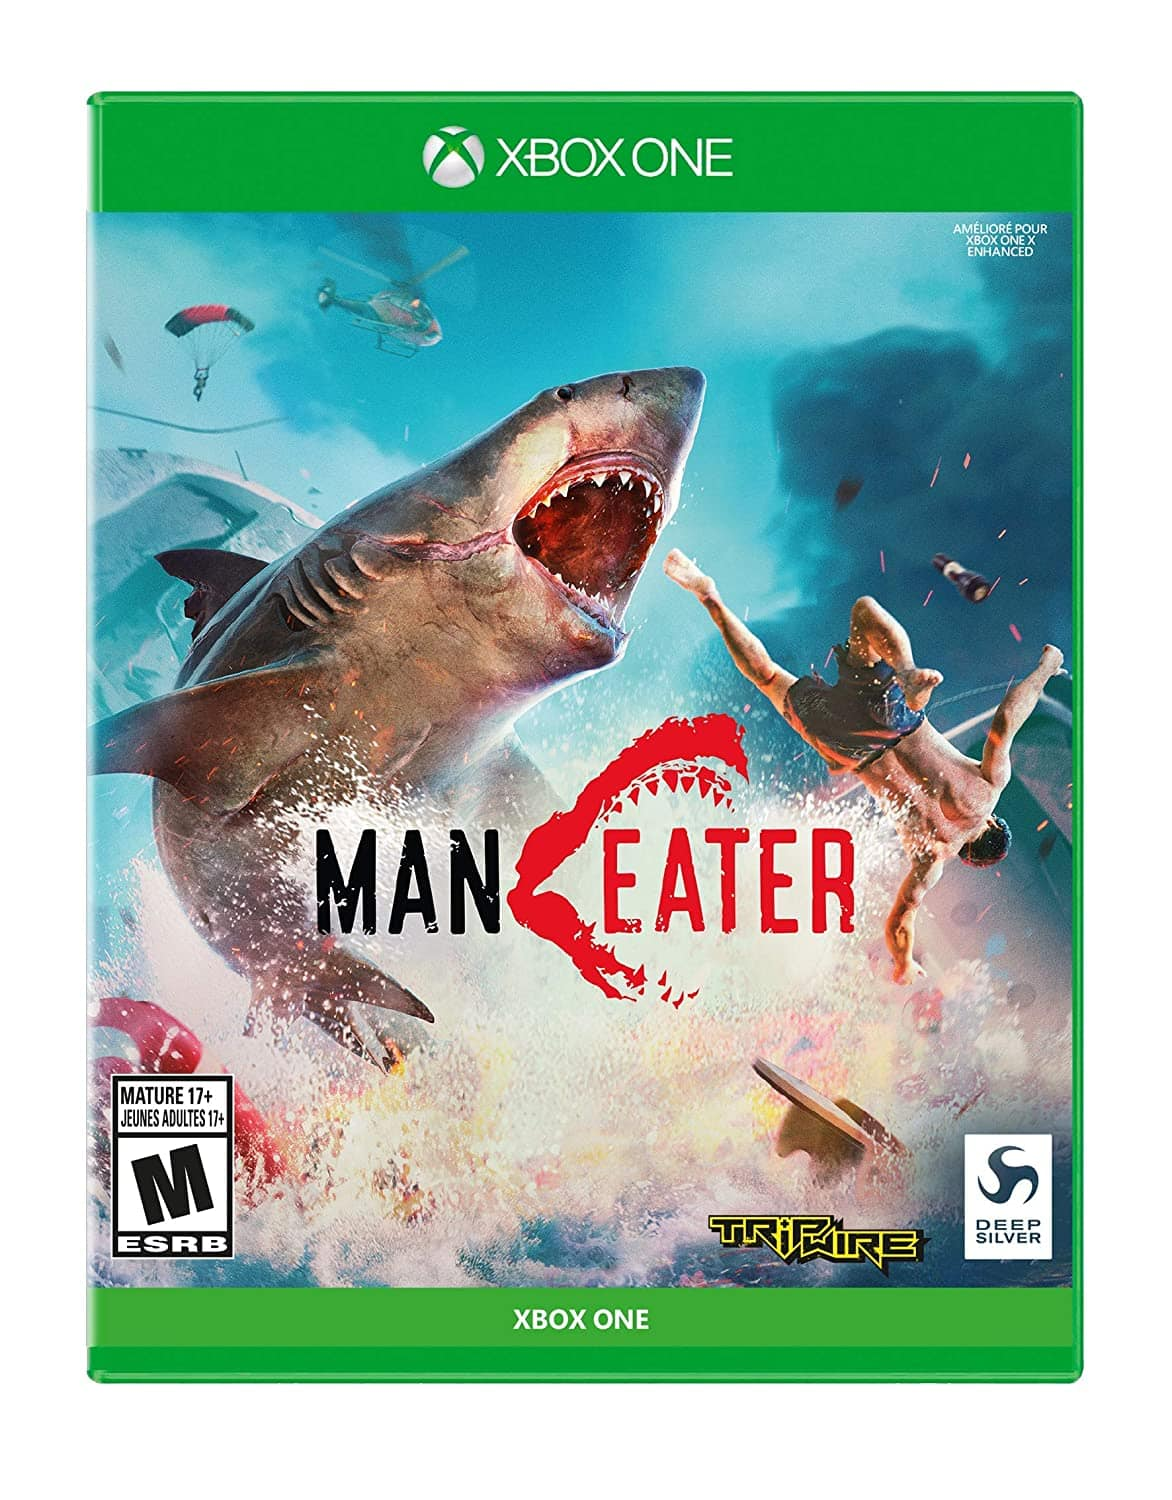 Maneater - [Xbox One] Preorder $33.88